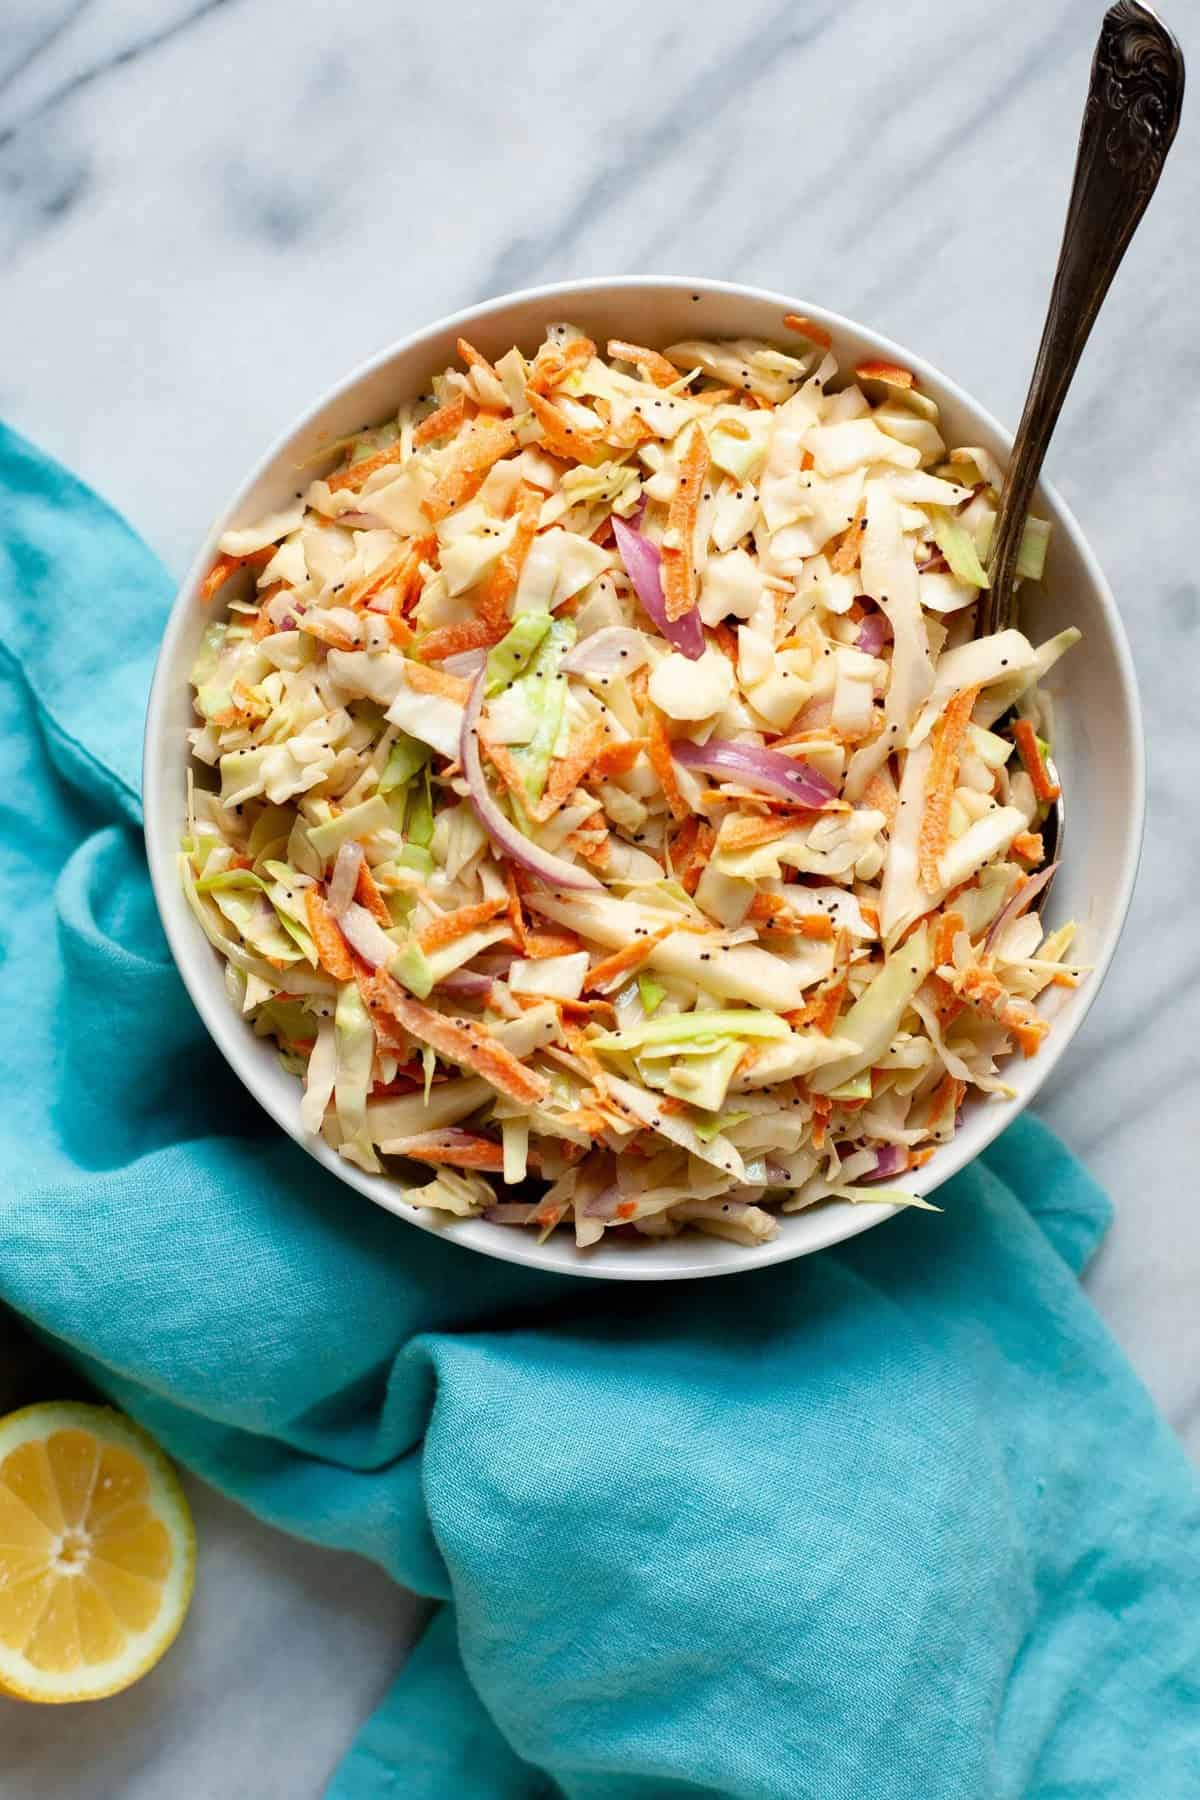 Overhead shot of Sweet and Creamy Coleslaw in a white bowl on top of a blue towel